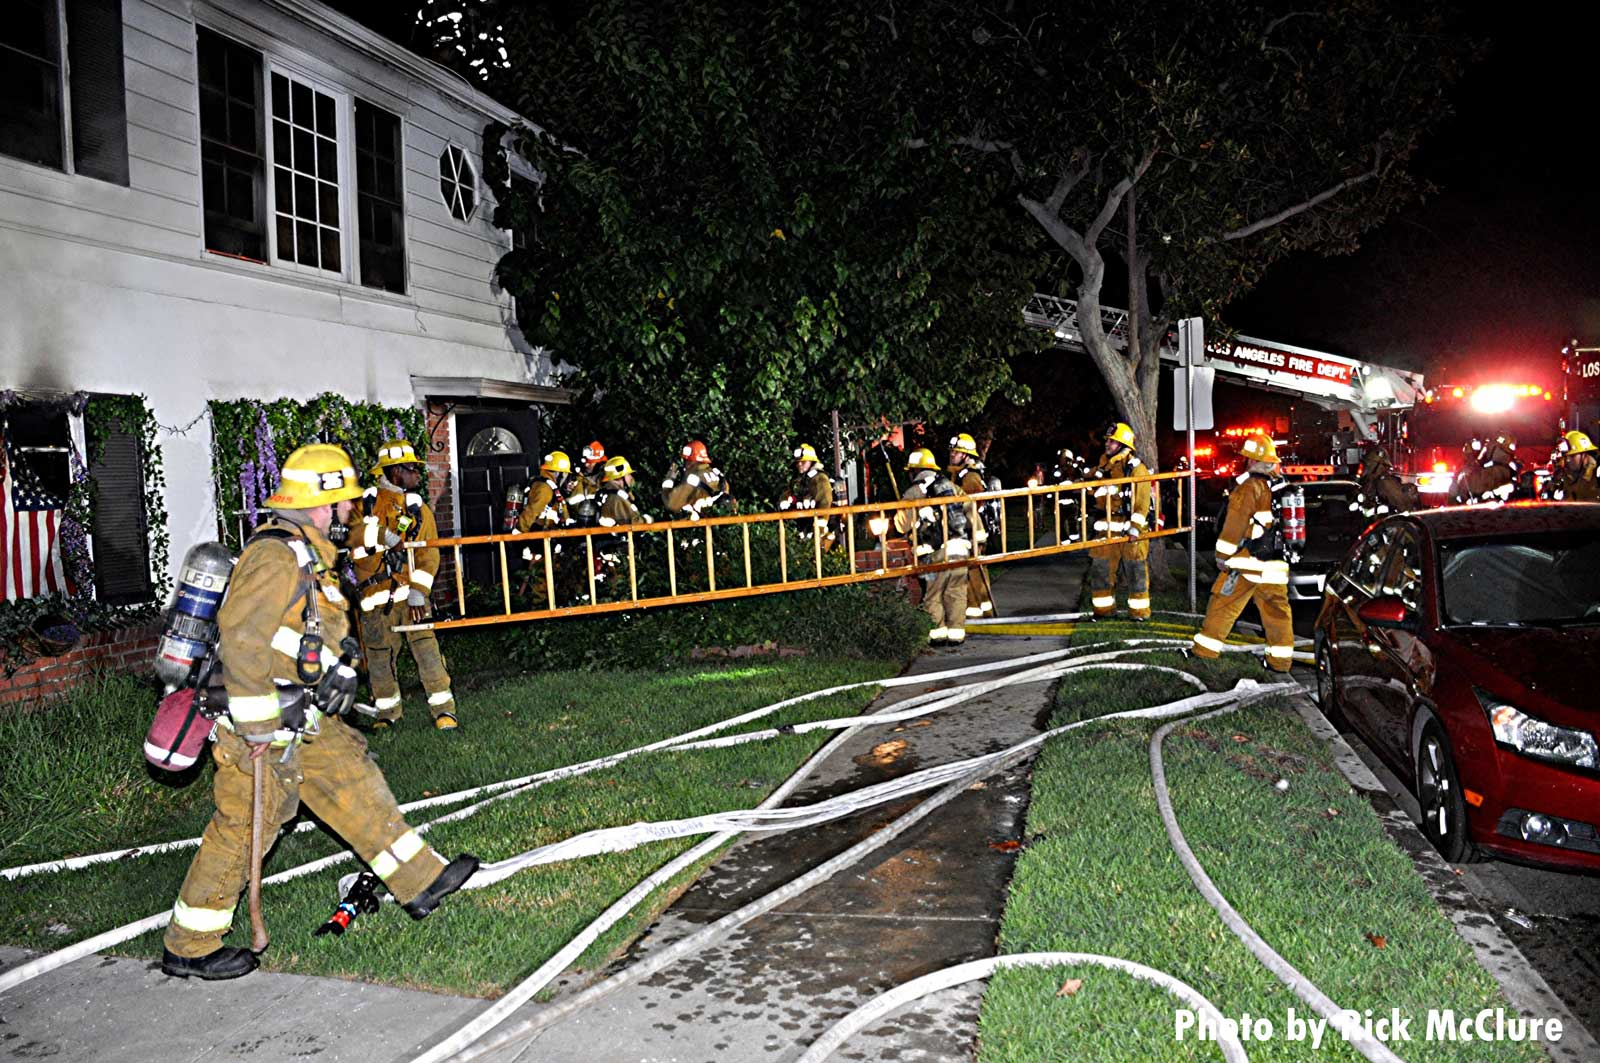 Firefighters with a ladder at Los Angeles house fire